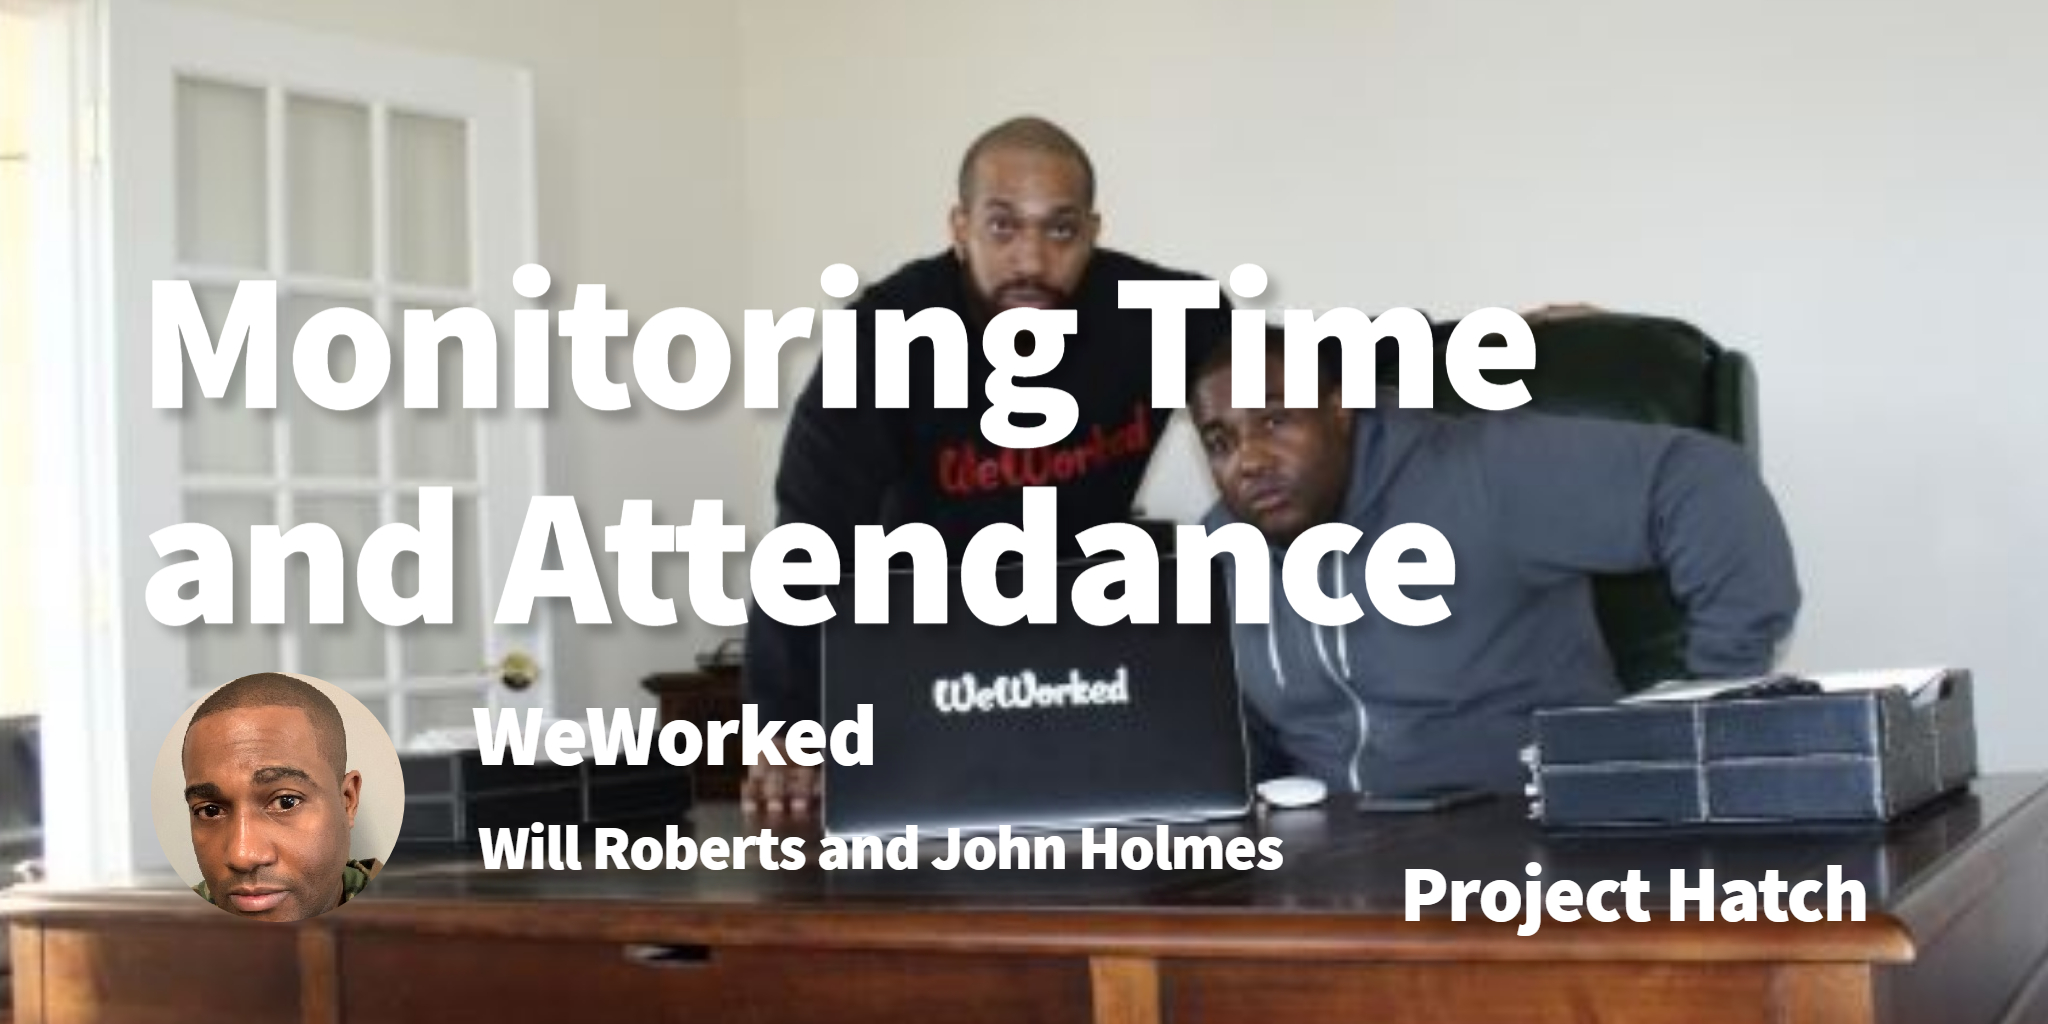 WeWorked Will Roberts and John Holmes